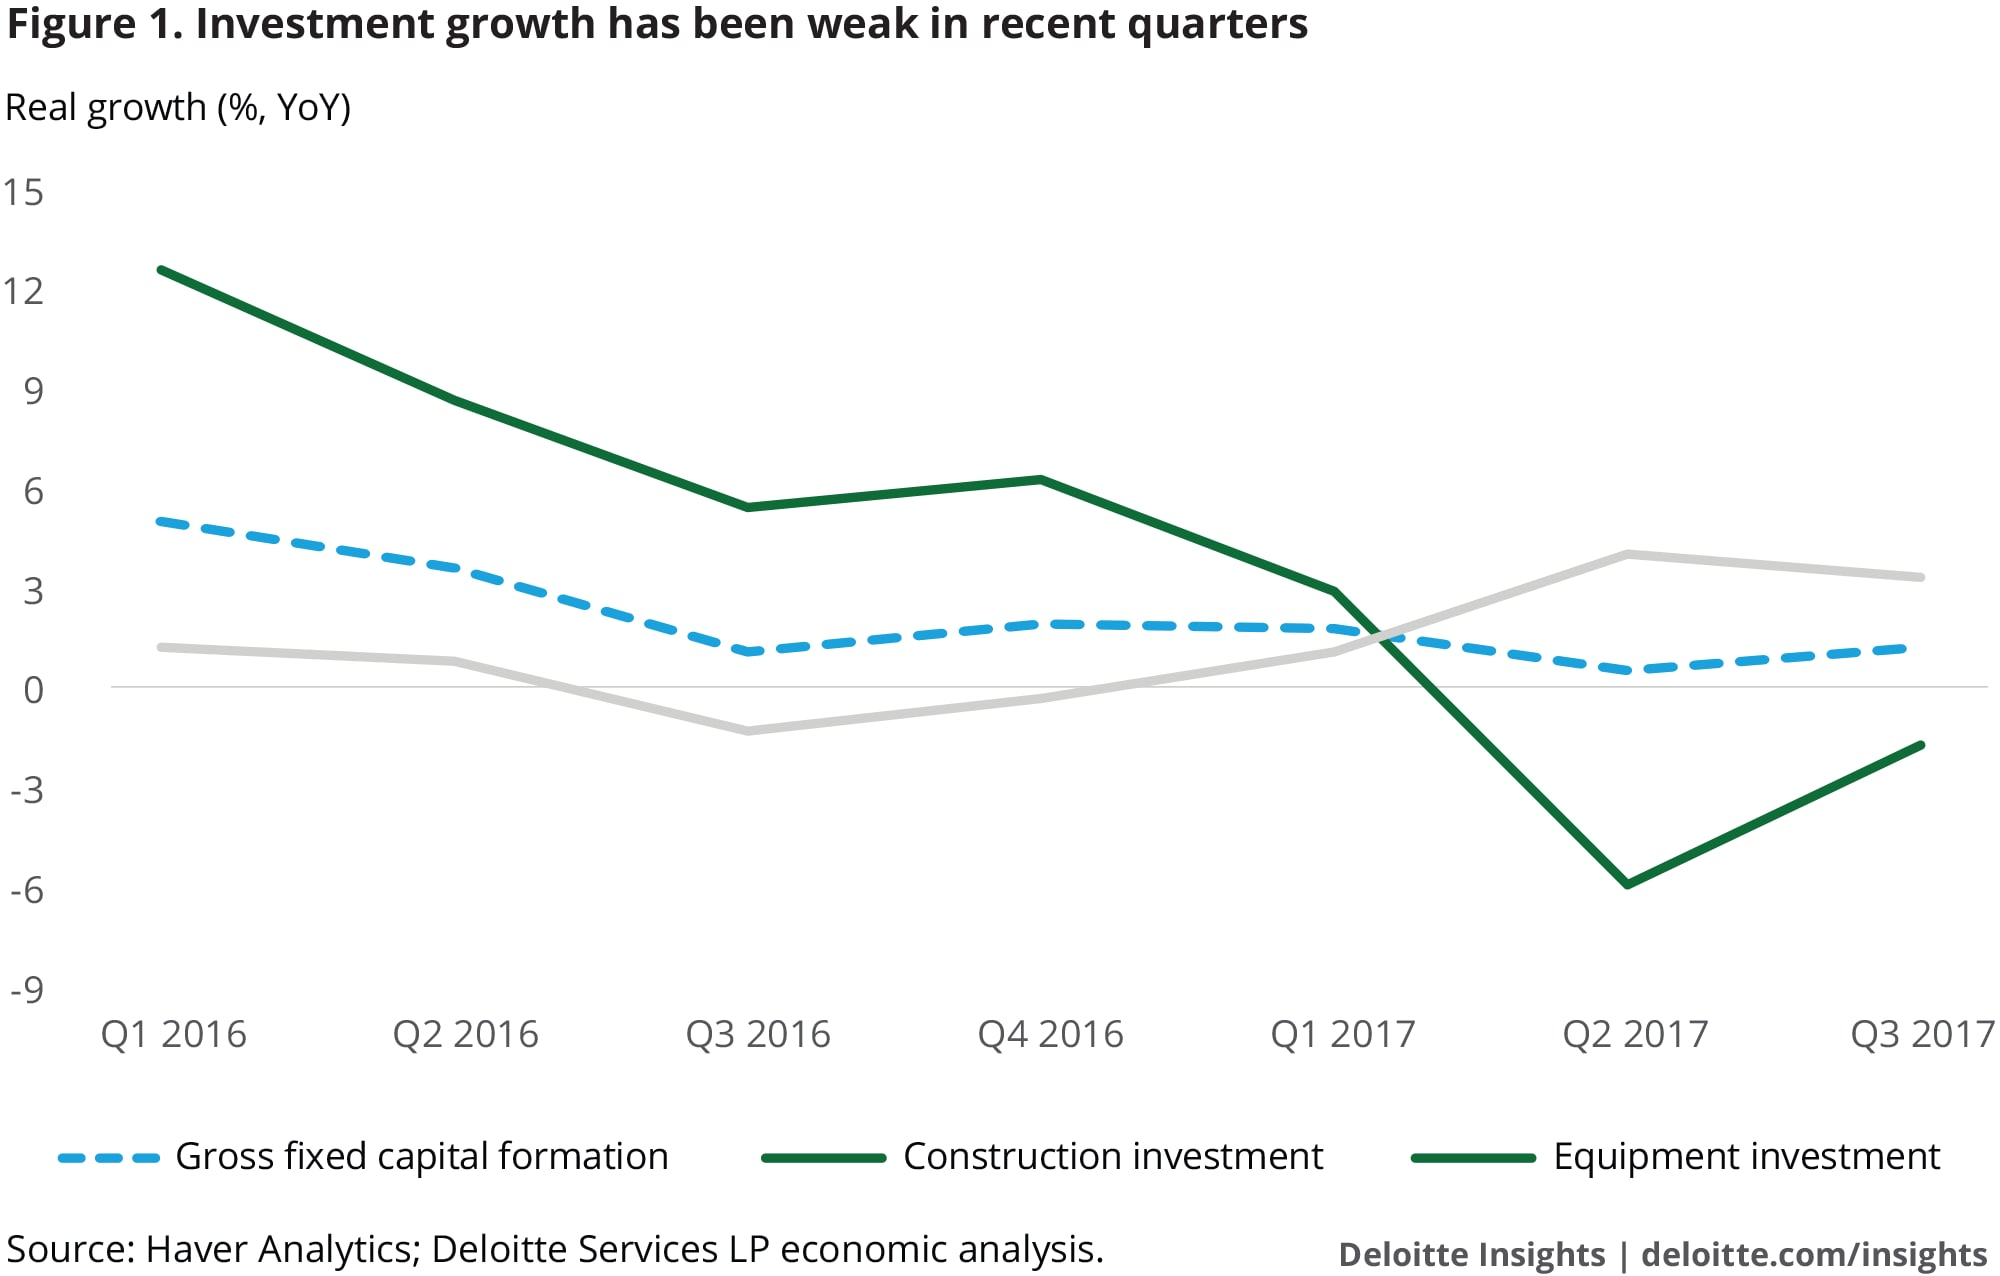 Investment growth has been weak in recent quarters